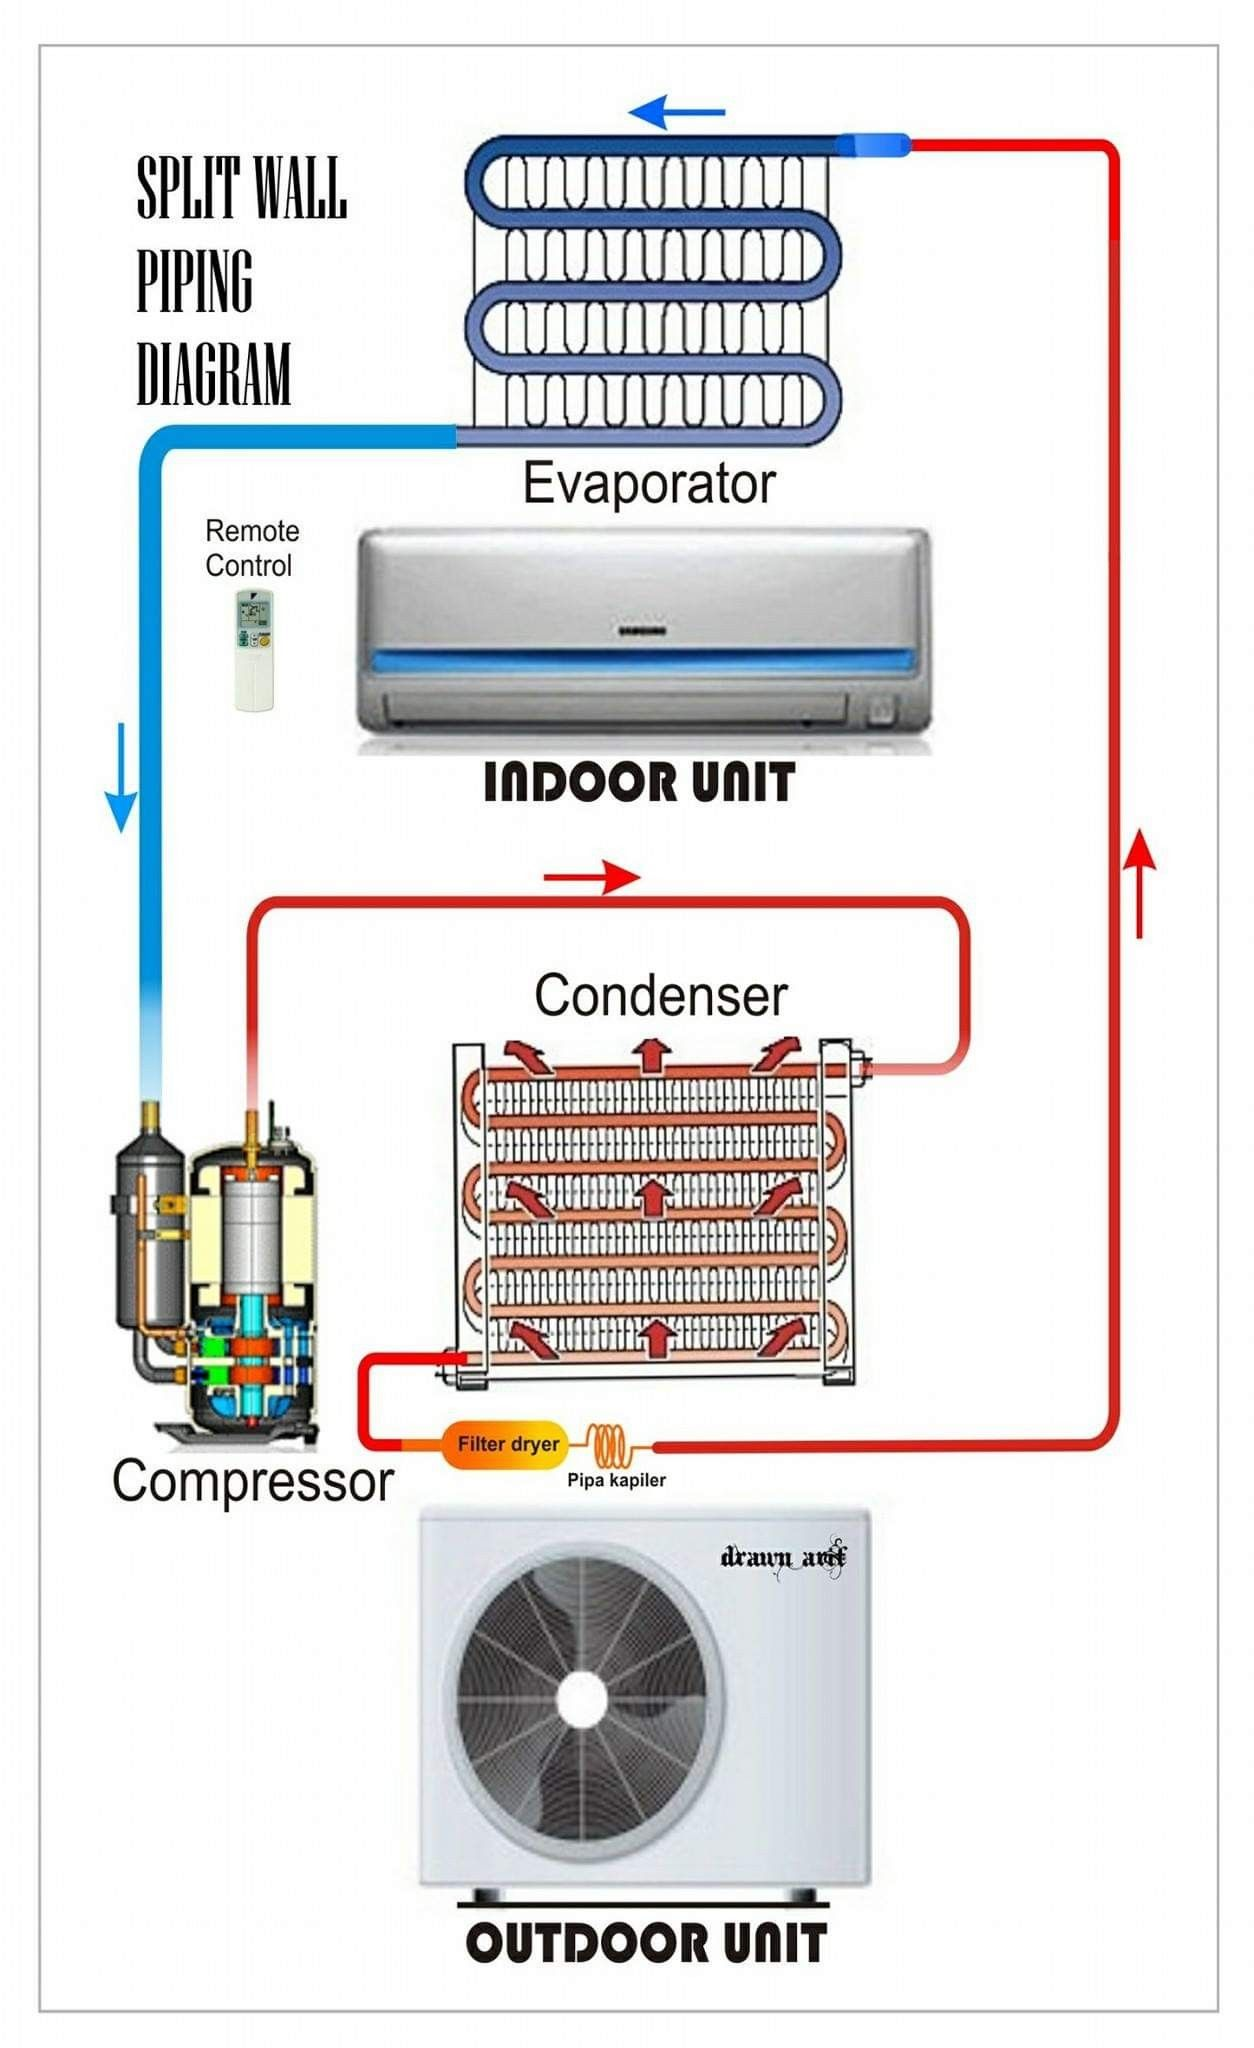 small resolution of split wall piping diagram air conditioning system in 2019 split wall piping diagram